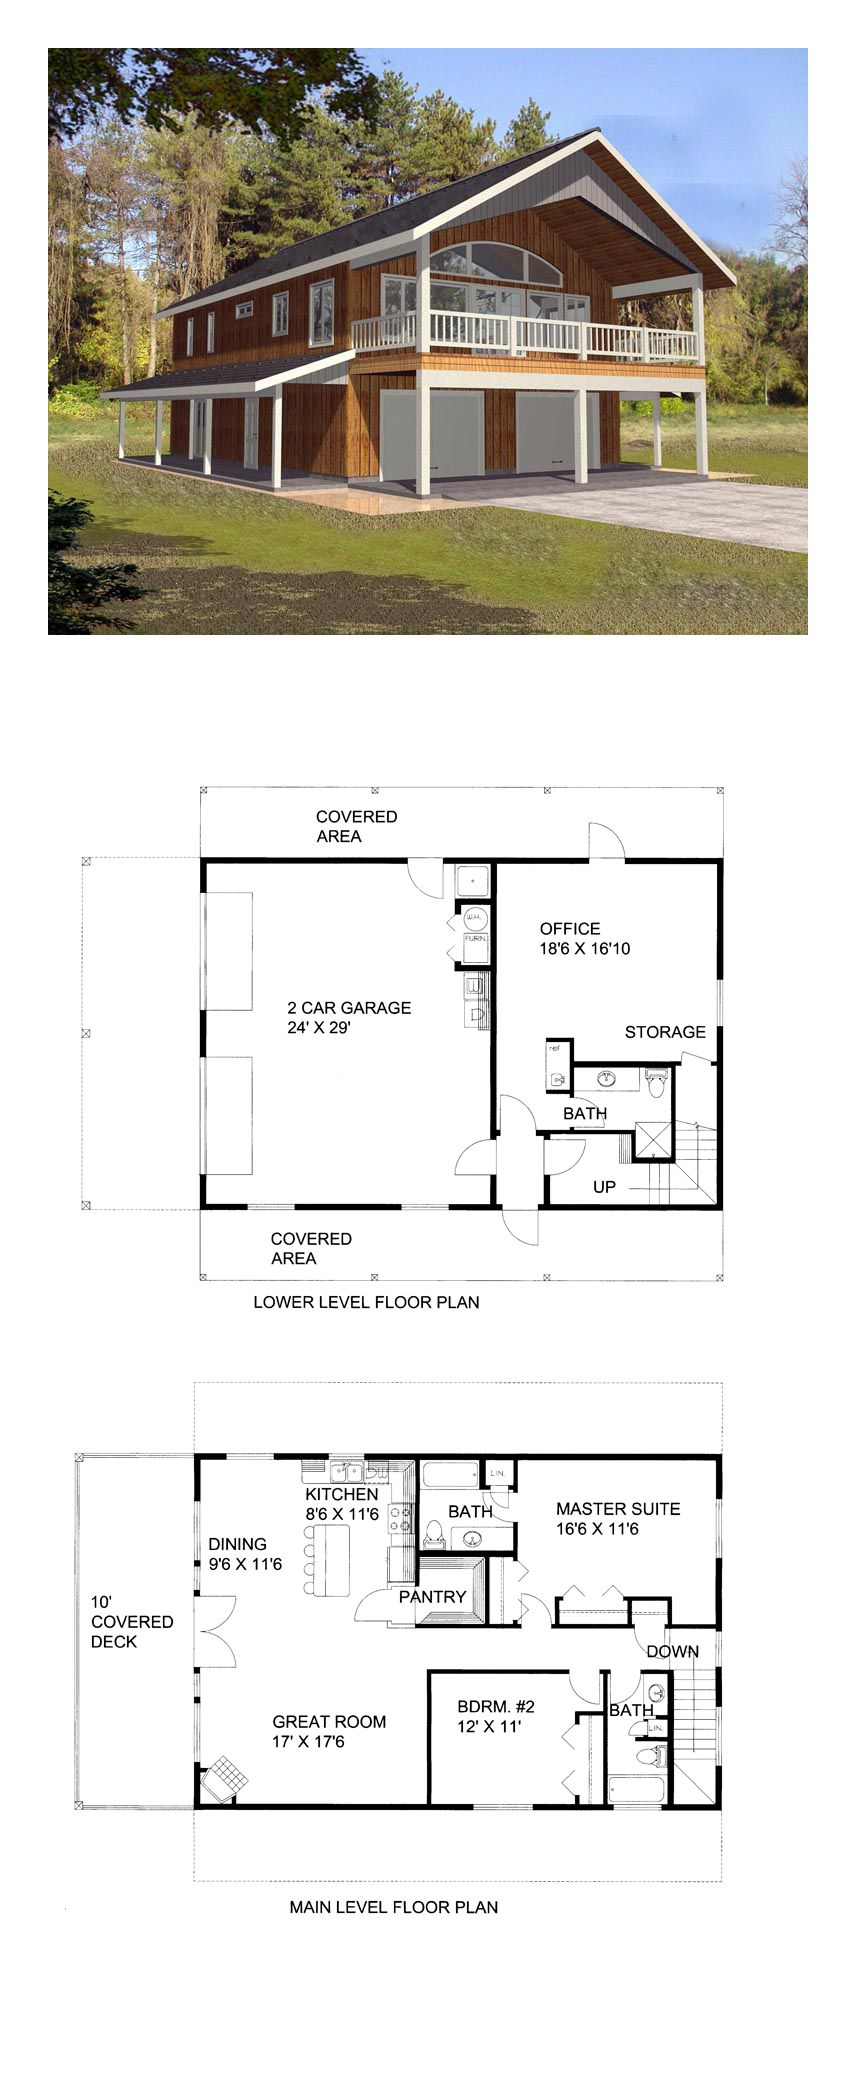 Garage apartment plan 85372 total living area 1901 sq for Garage apartment plans 2 car